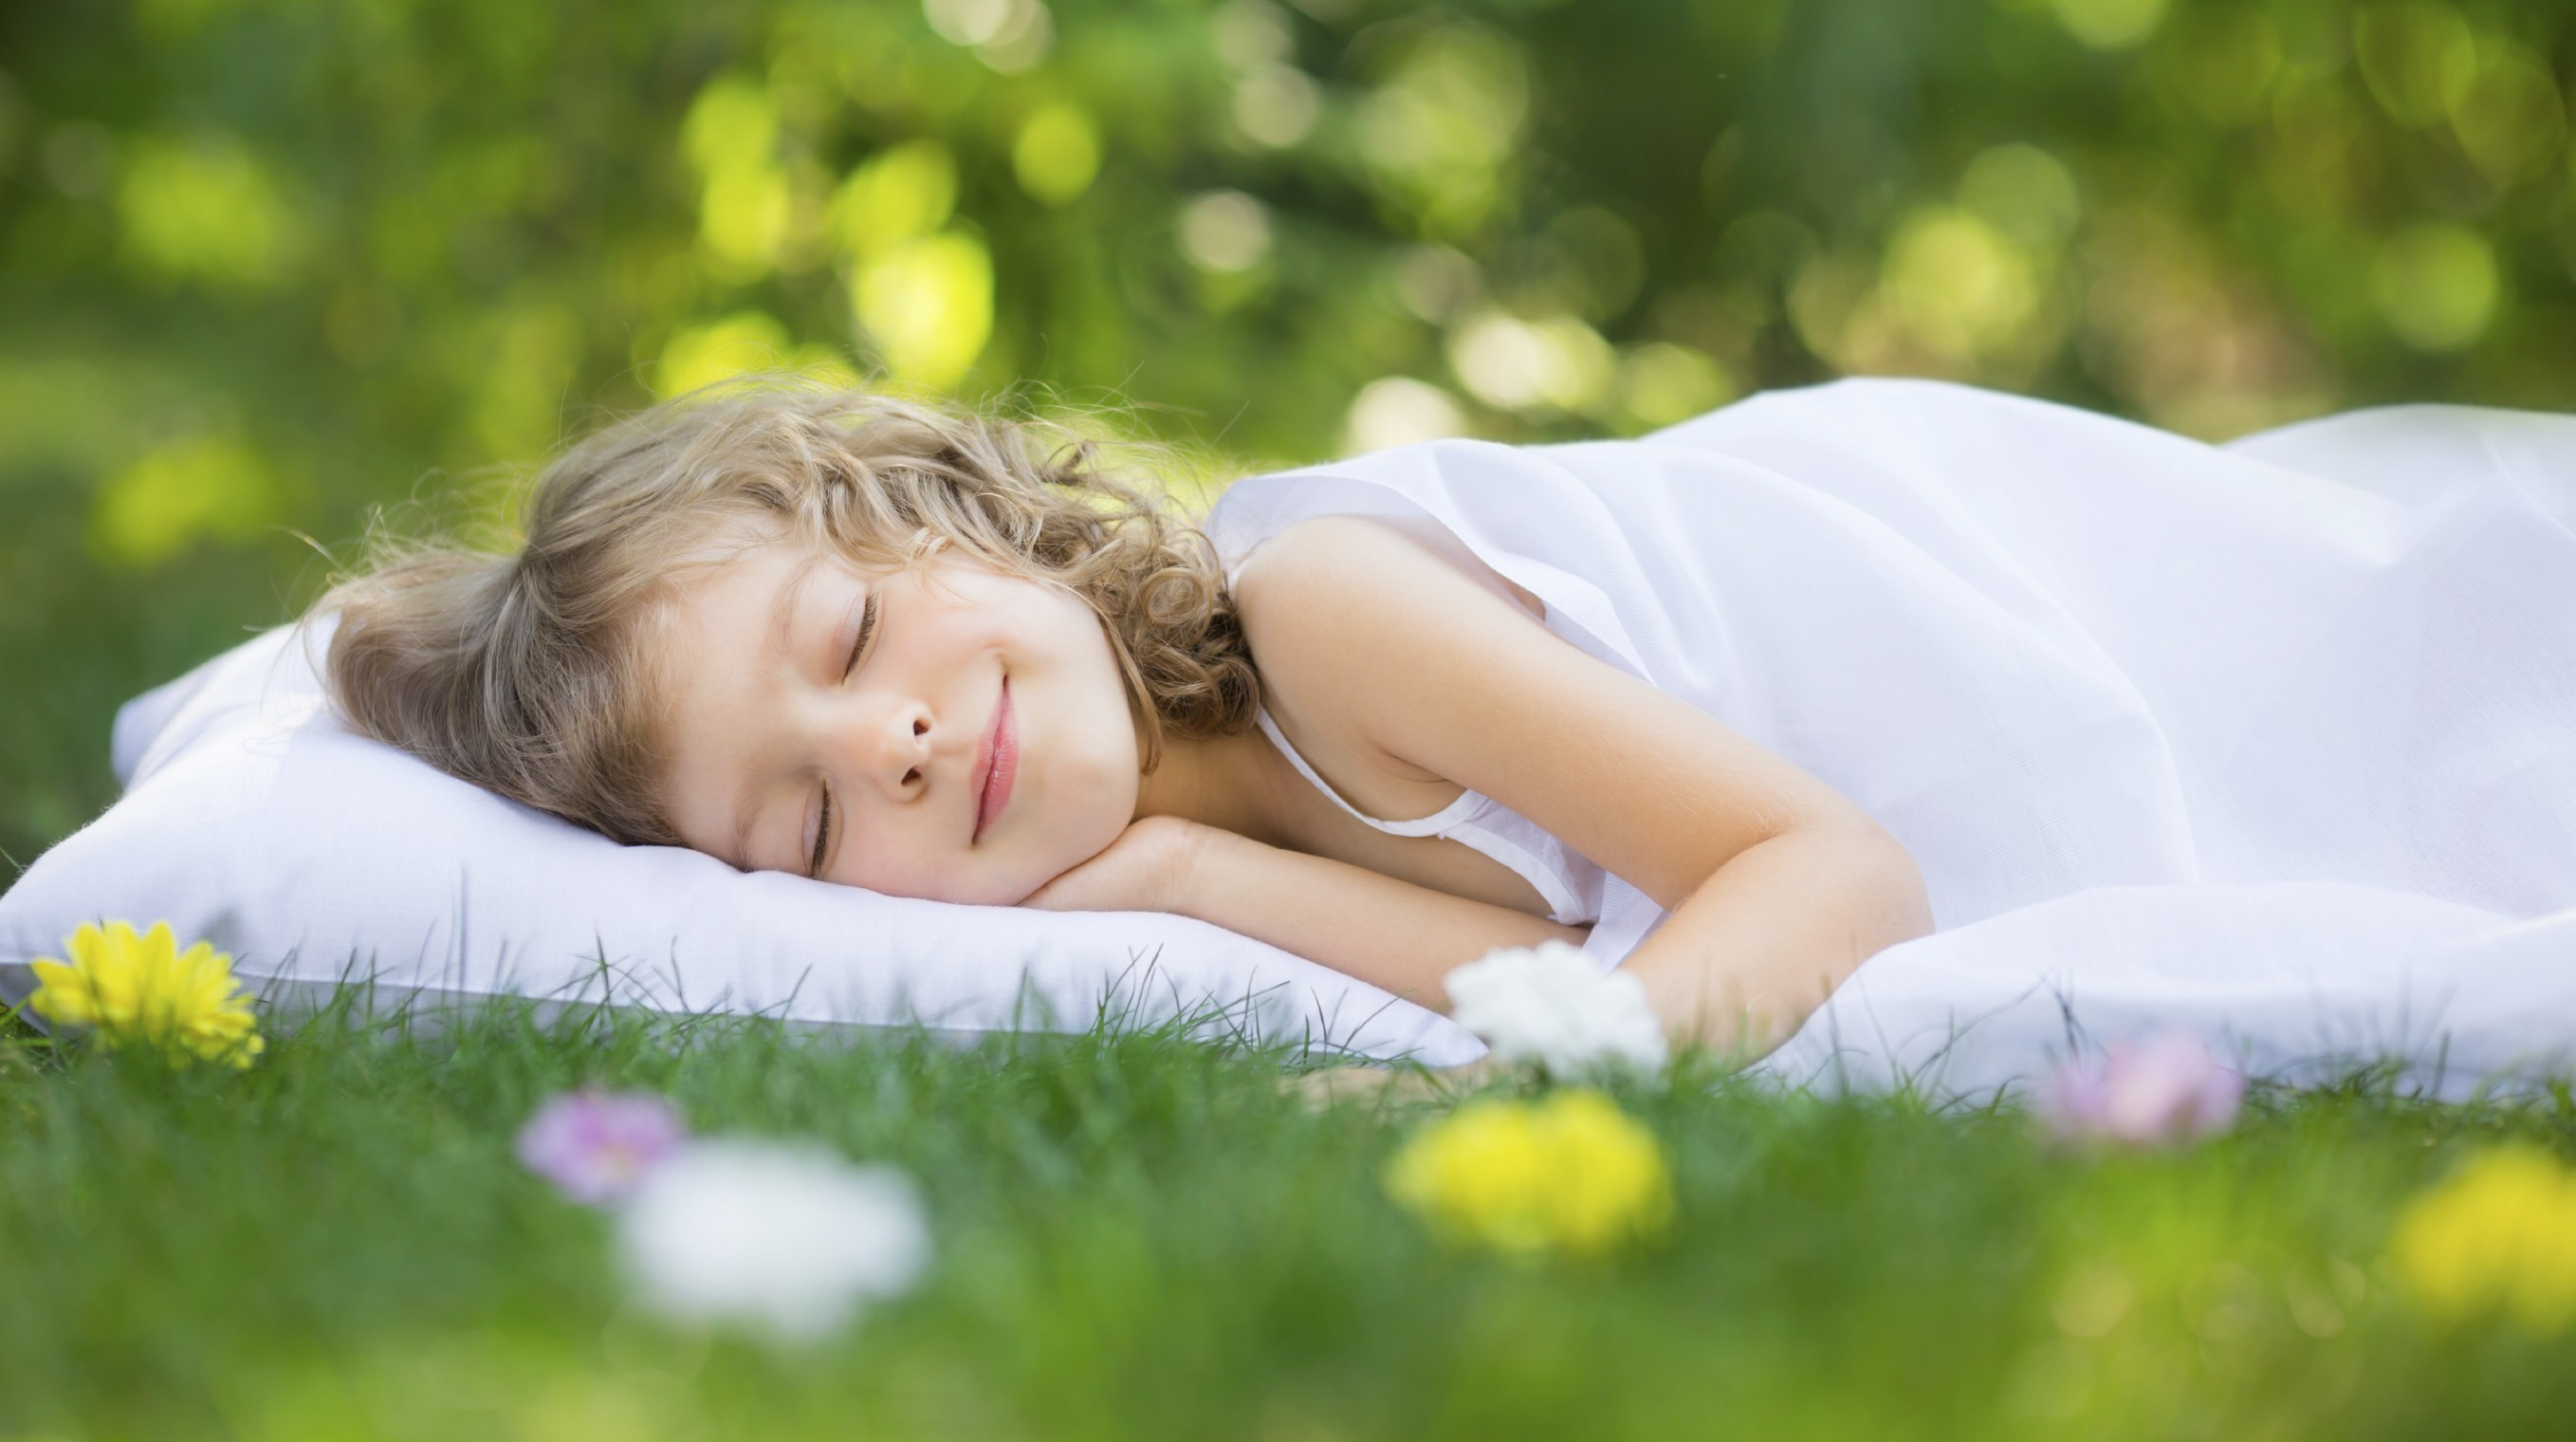 girl-sleeping-on-grass-e1421424320311